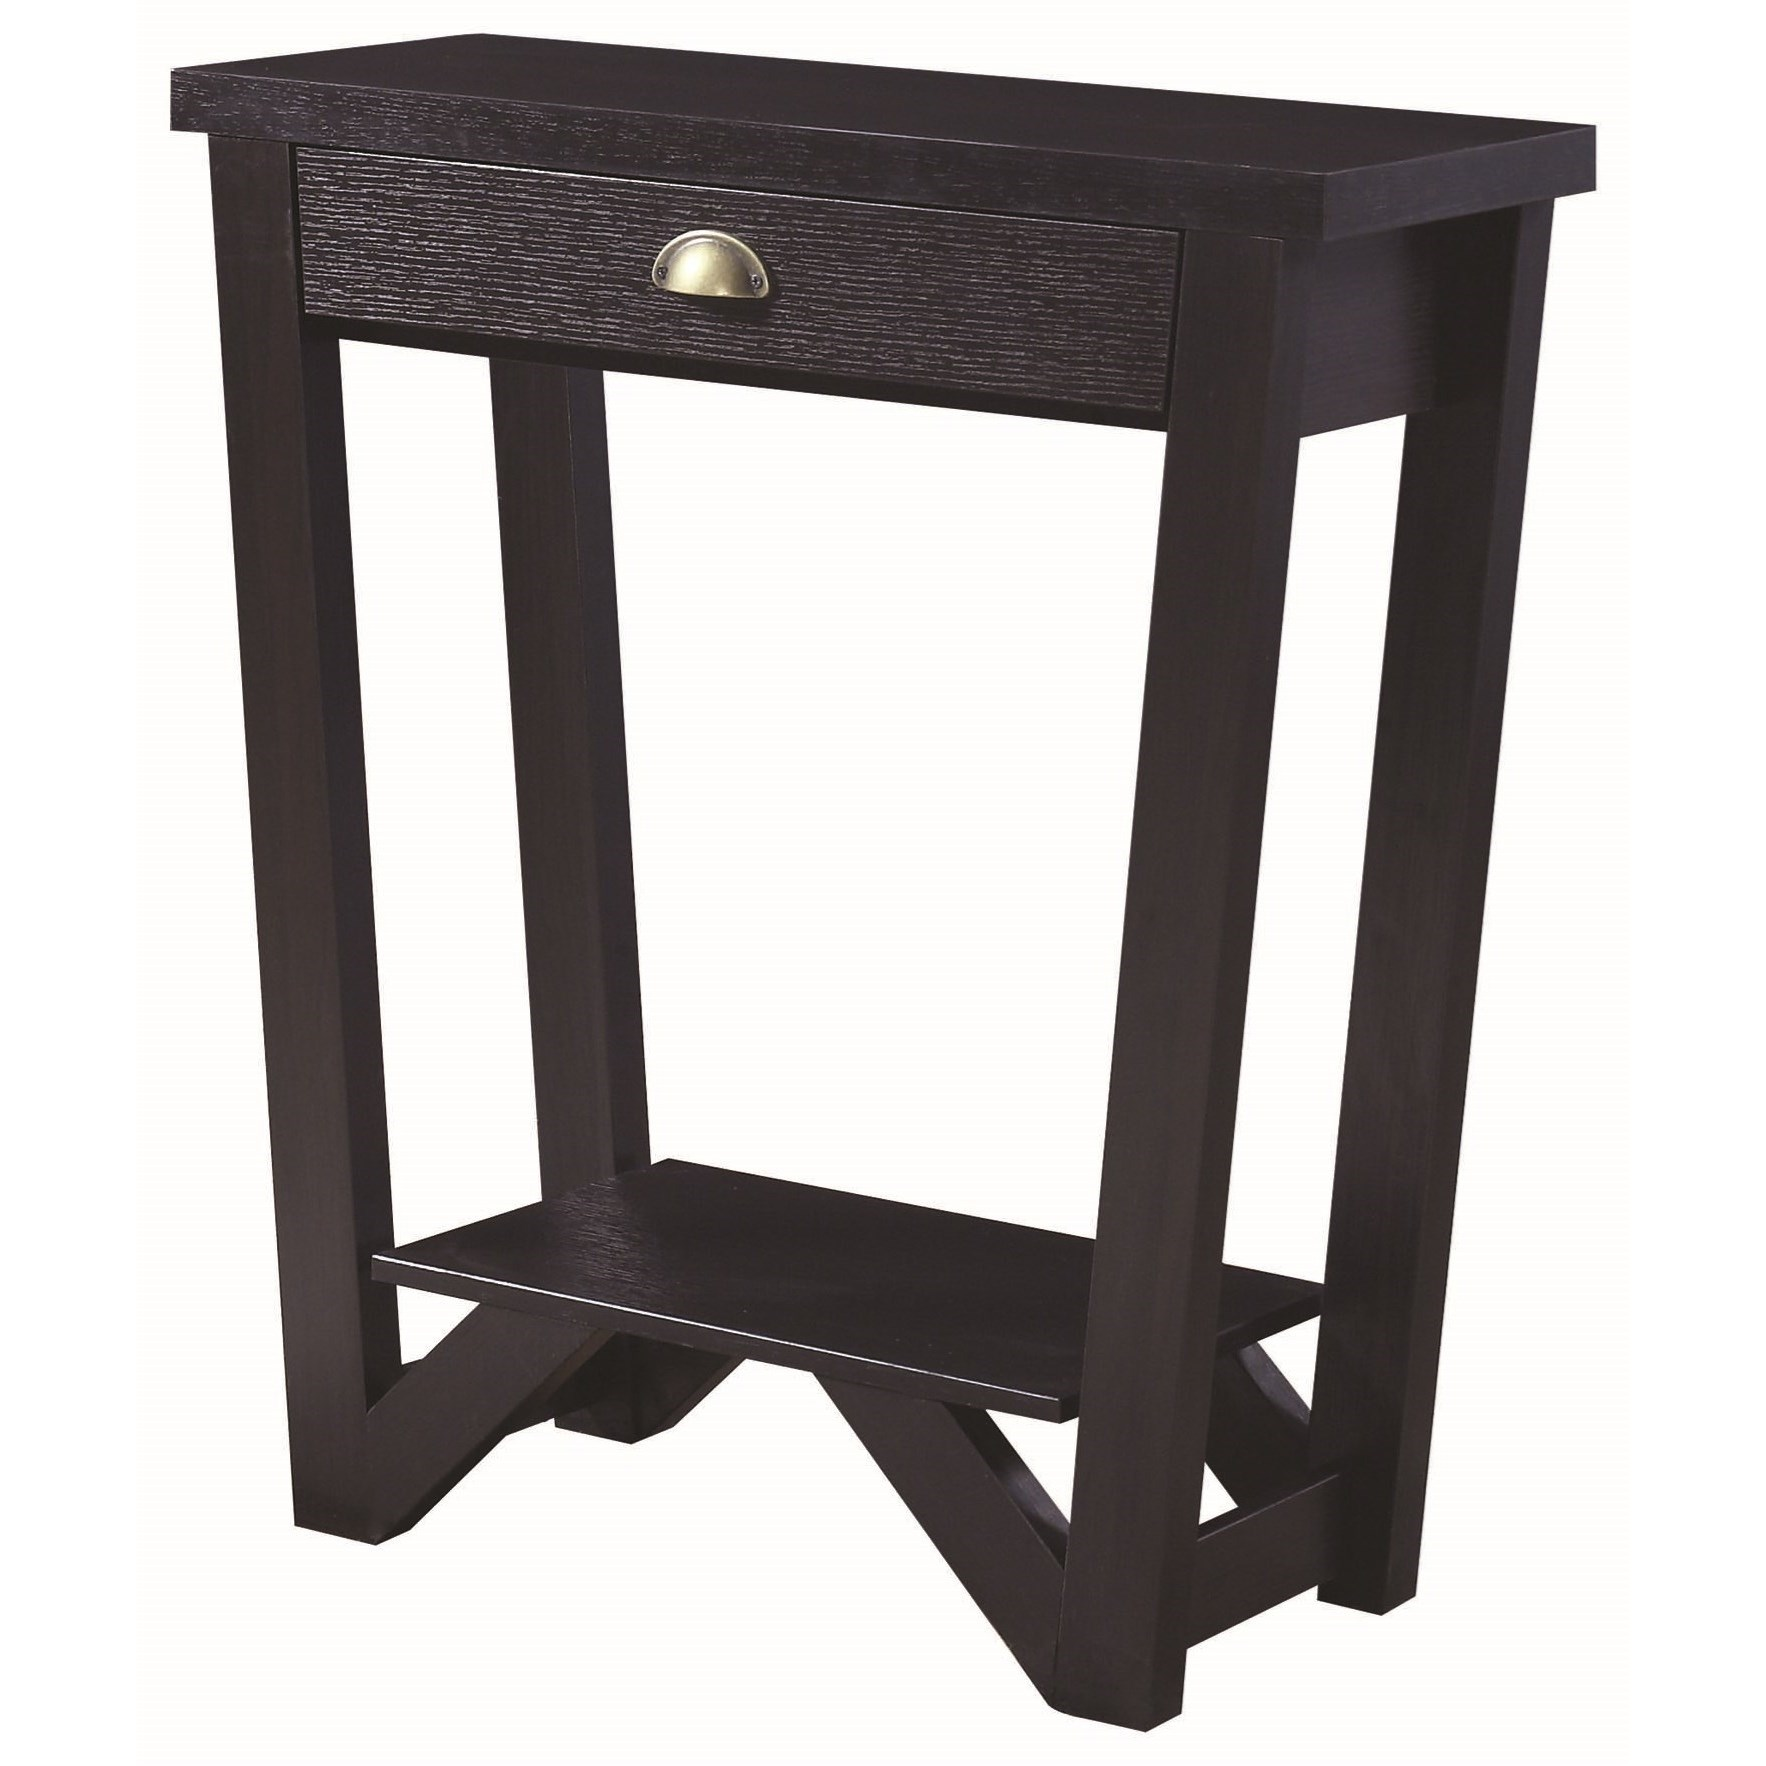 Coaster Accent Tables Console Table - Item Number: 950913